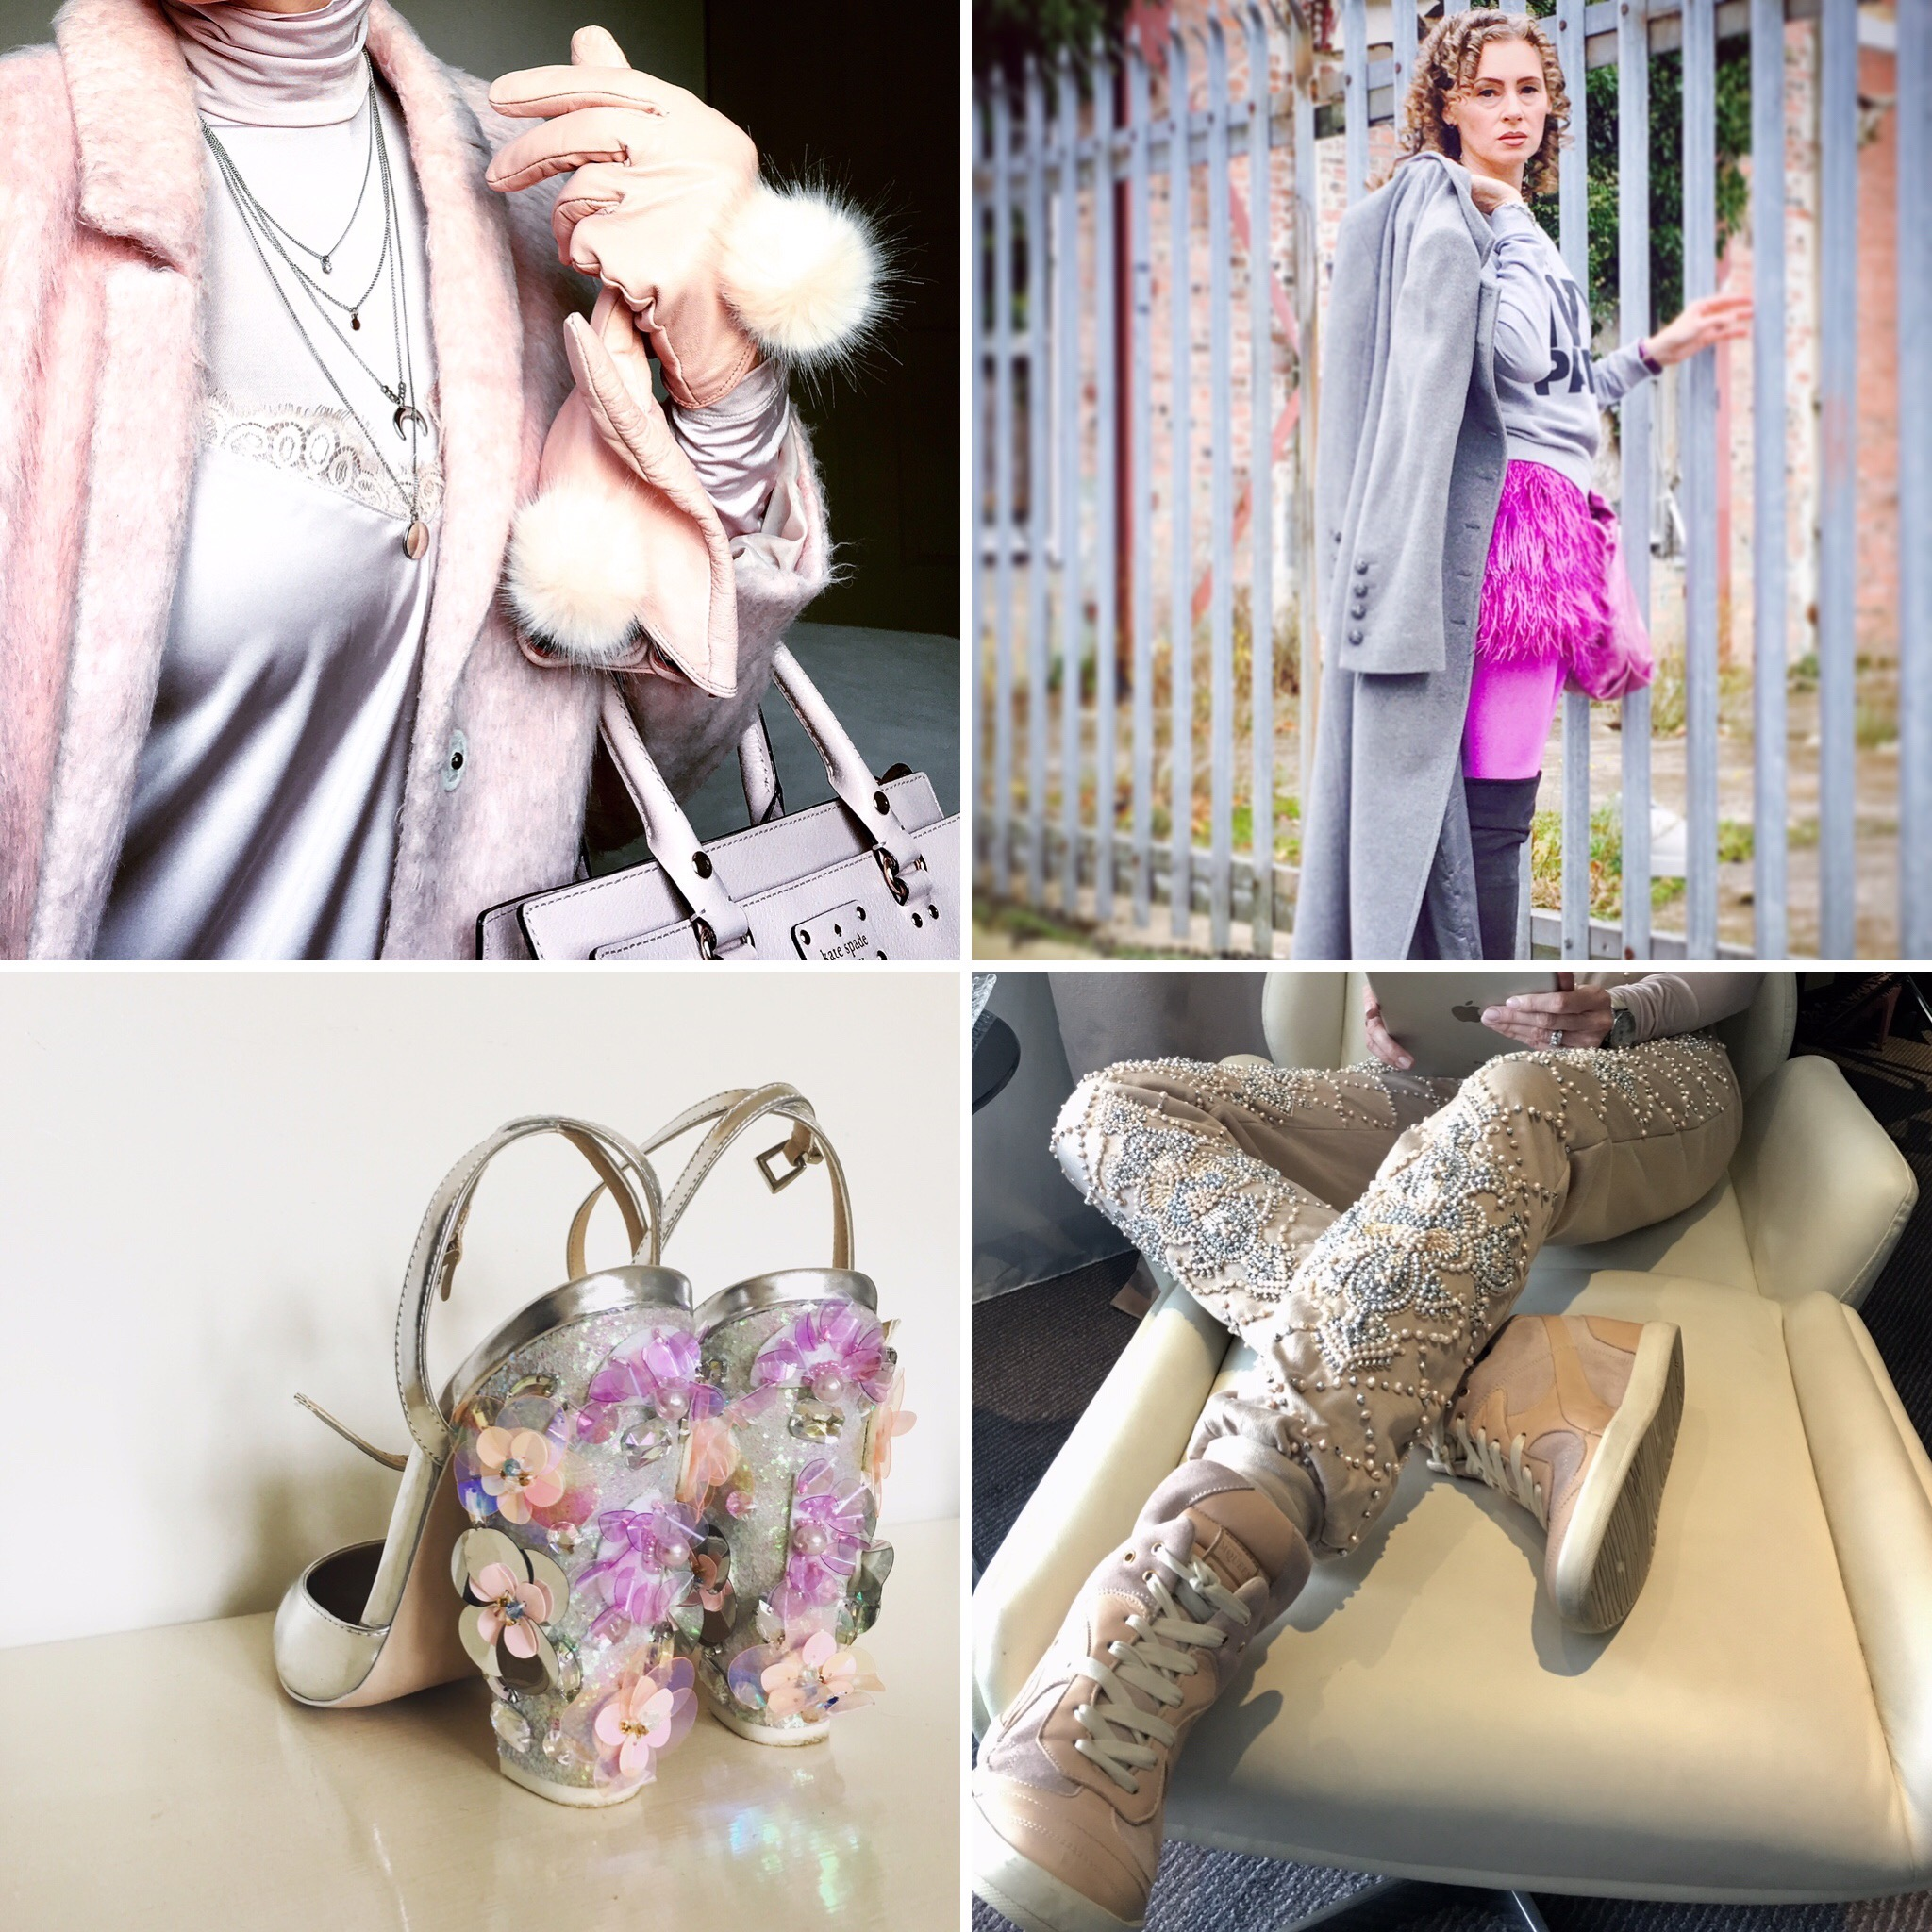 Unicorn chic ~ clockwise from top: Playing with blush-coloured textures; Feathers with fitness gear; Whimsical floral heels; Beaded joggers with kicks